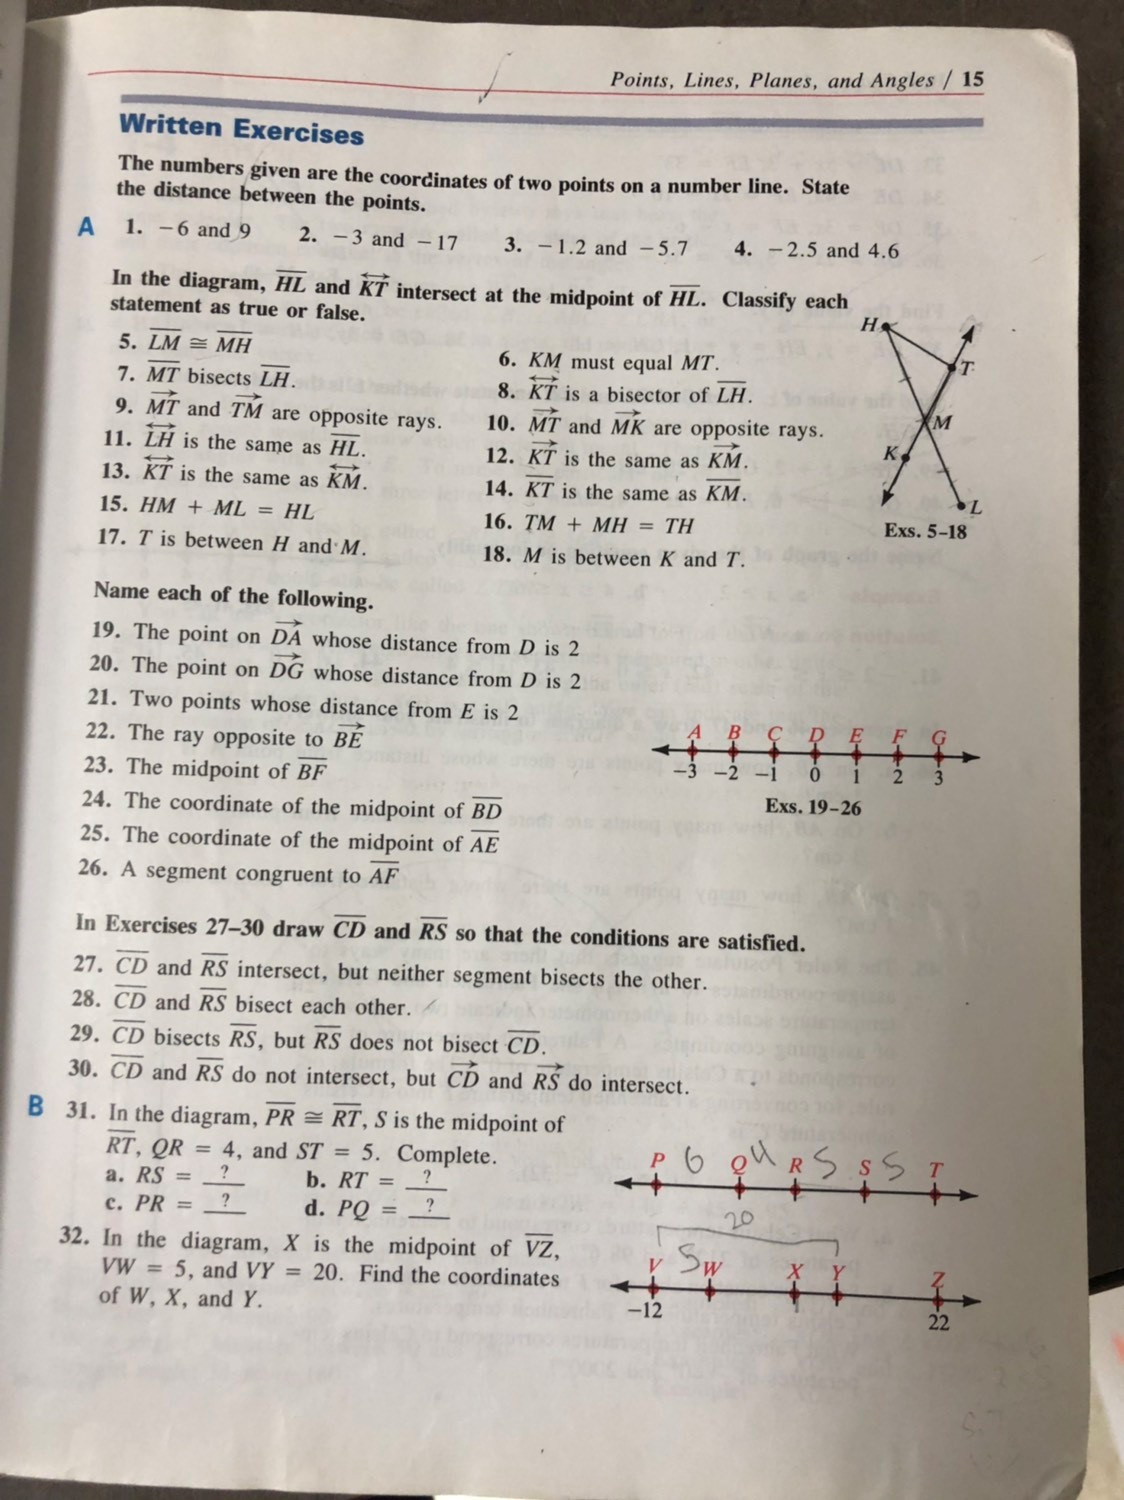 Points Lines Planes And Angles Worksheet Answers